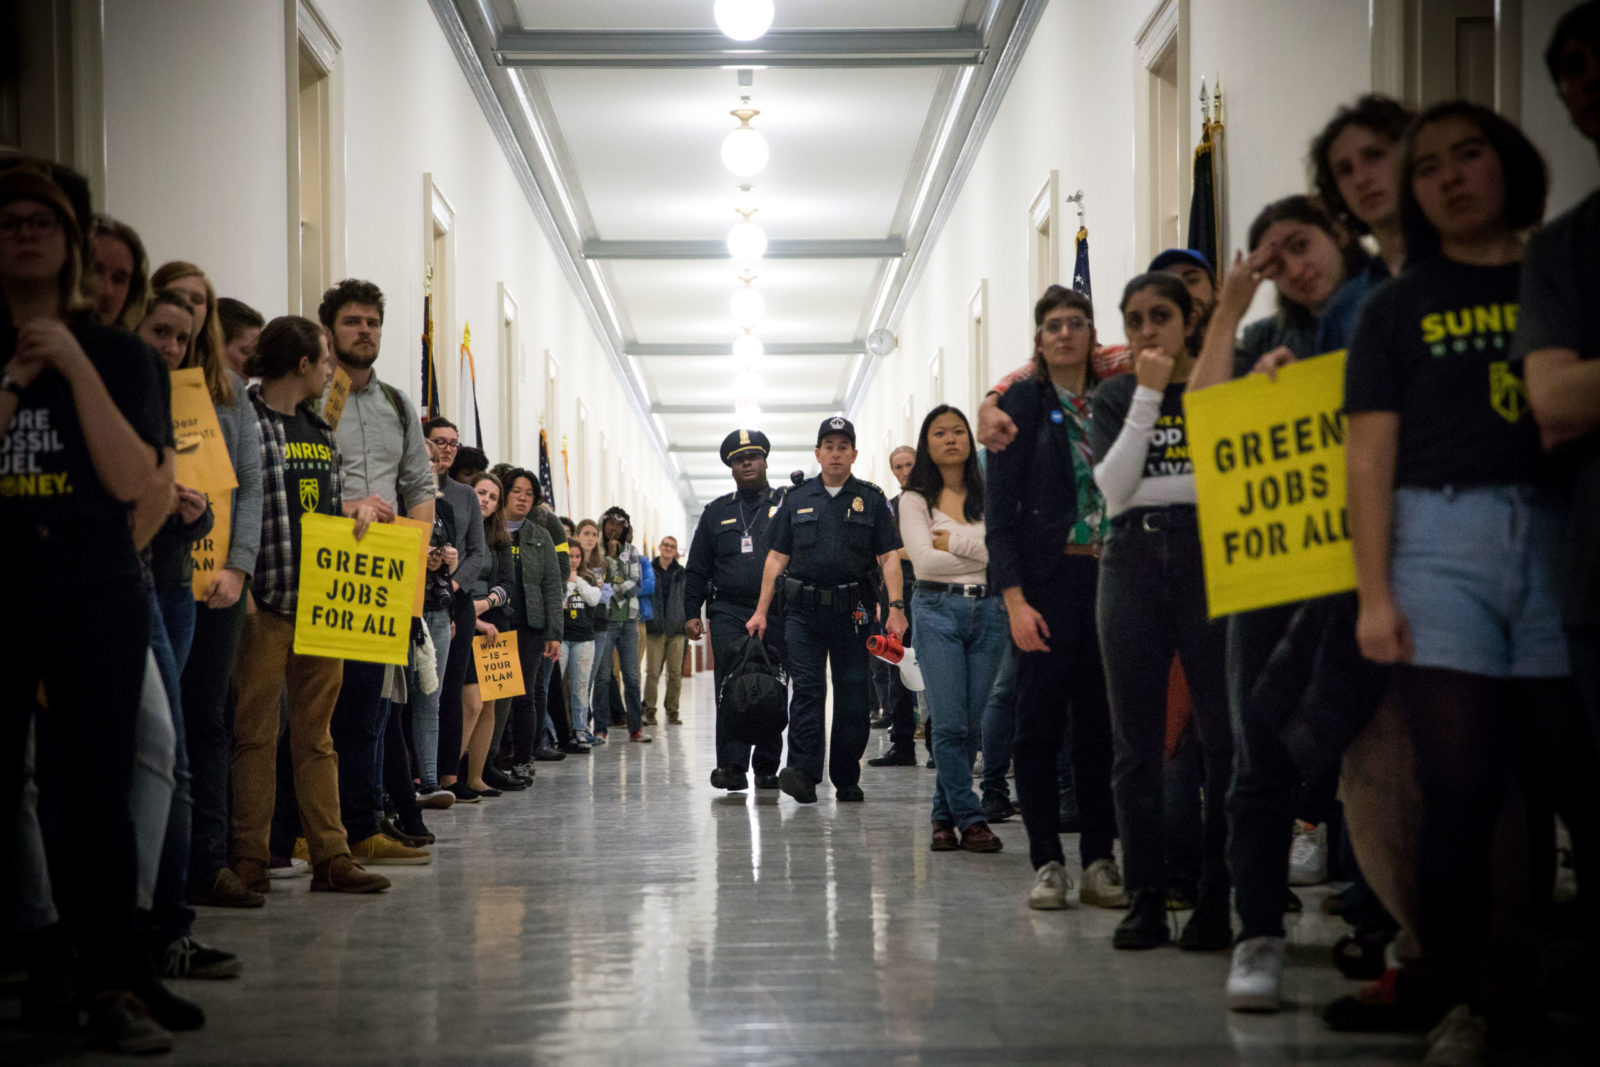 "Activists lined up on congressional halls during the November 2018 sit-in of Nancy Pelosi's office to demand a Green New Deal. Police officers are walking down the halls between activist lines as people hold signs saying ""Green Jobs For All""."